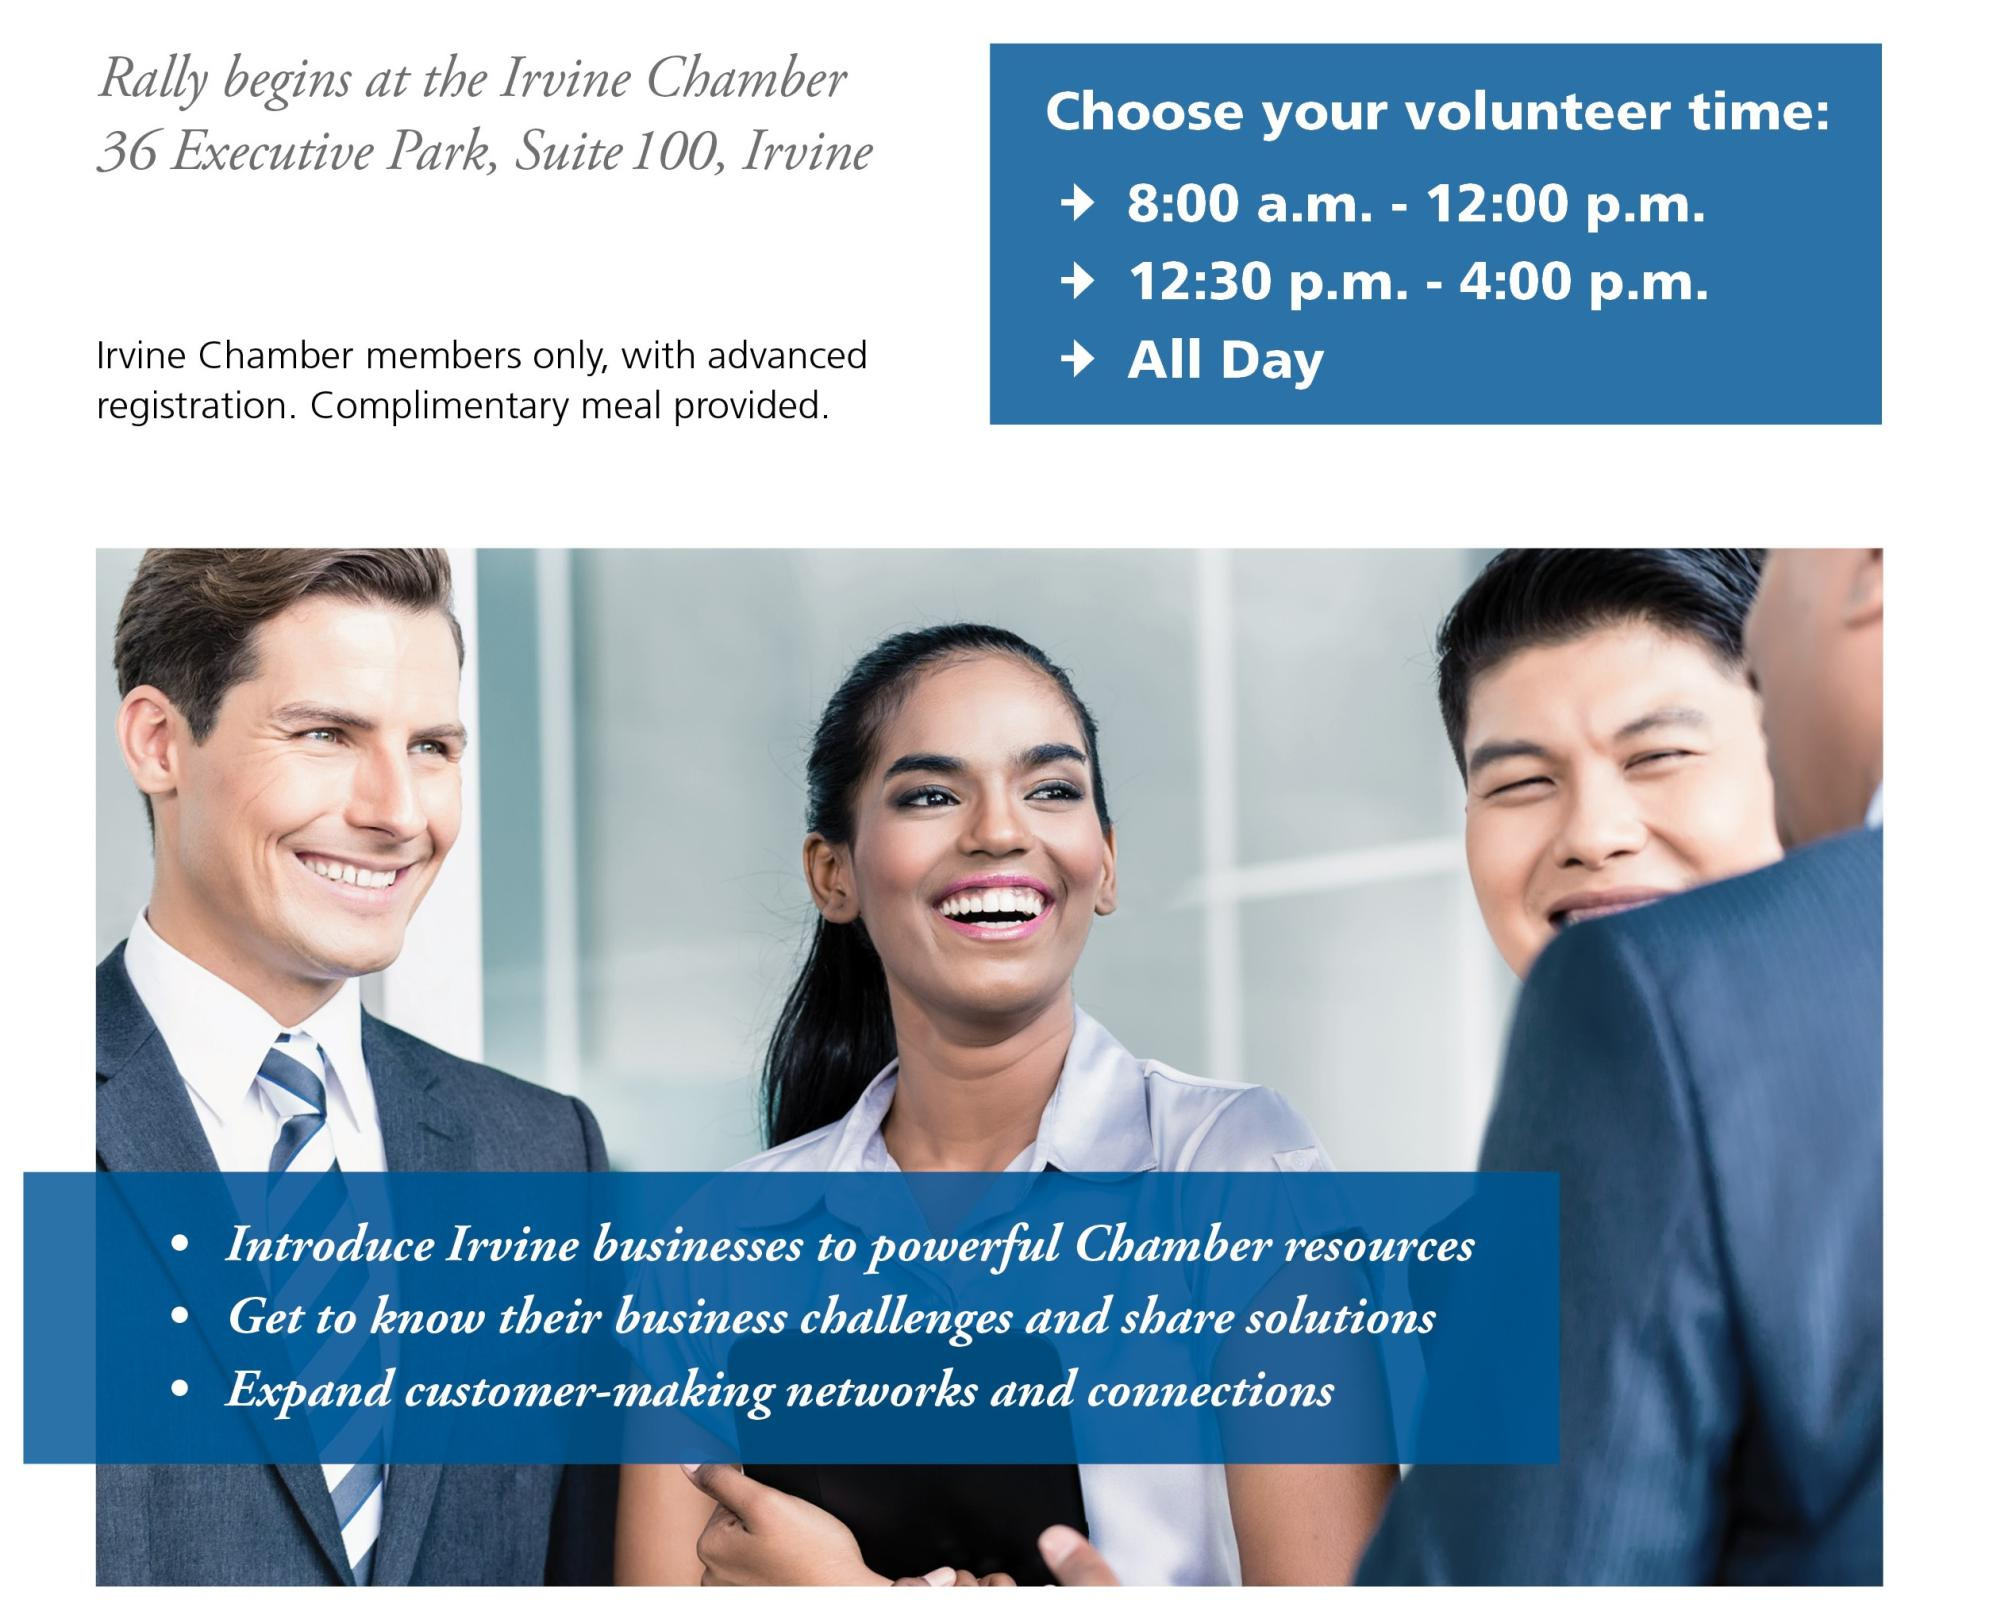 Irvine Business Outreach Photo - Click Here to See